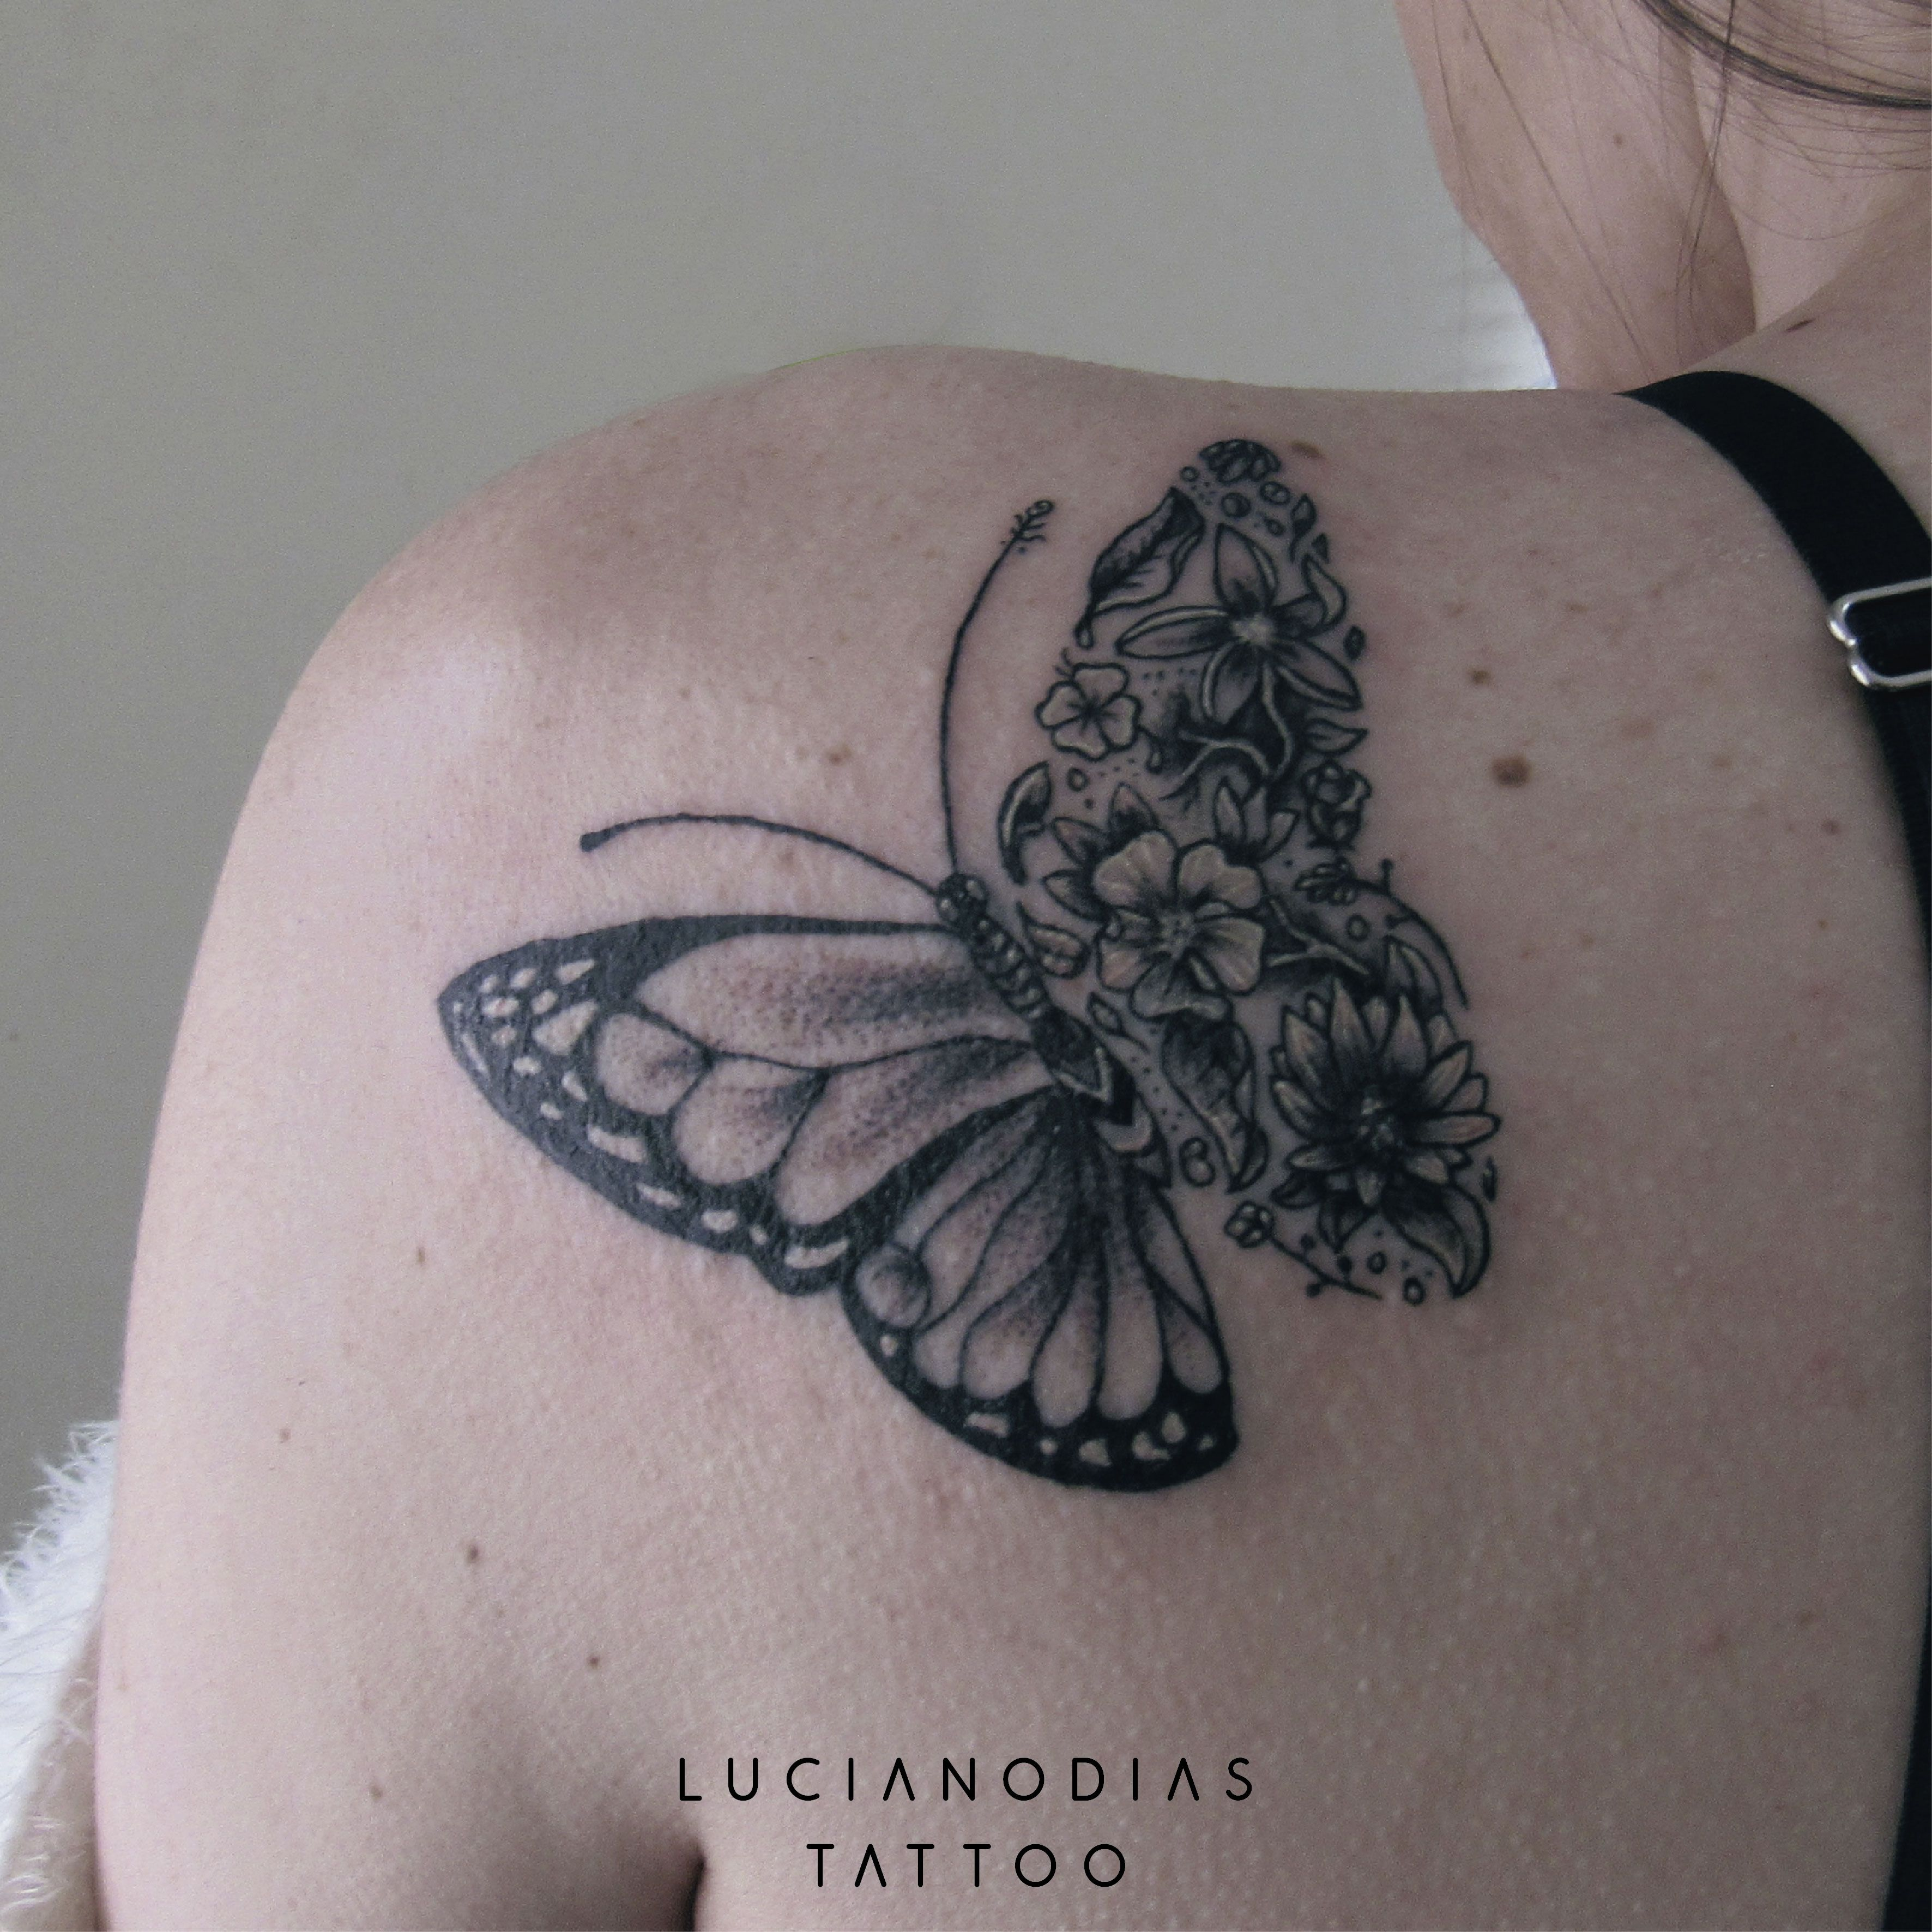 Half Butterfly Half Flowers Blackwork Tattoo Made By Me At The Black Box Studio Blackwork Tattoo Blackwork Butterfly Tattoo